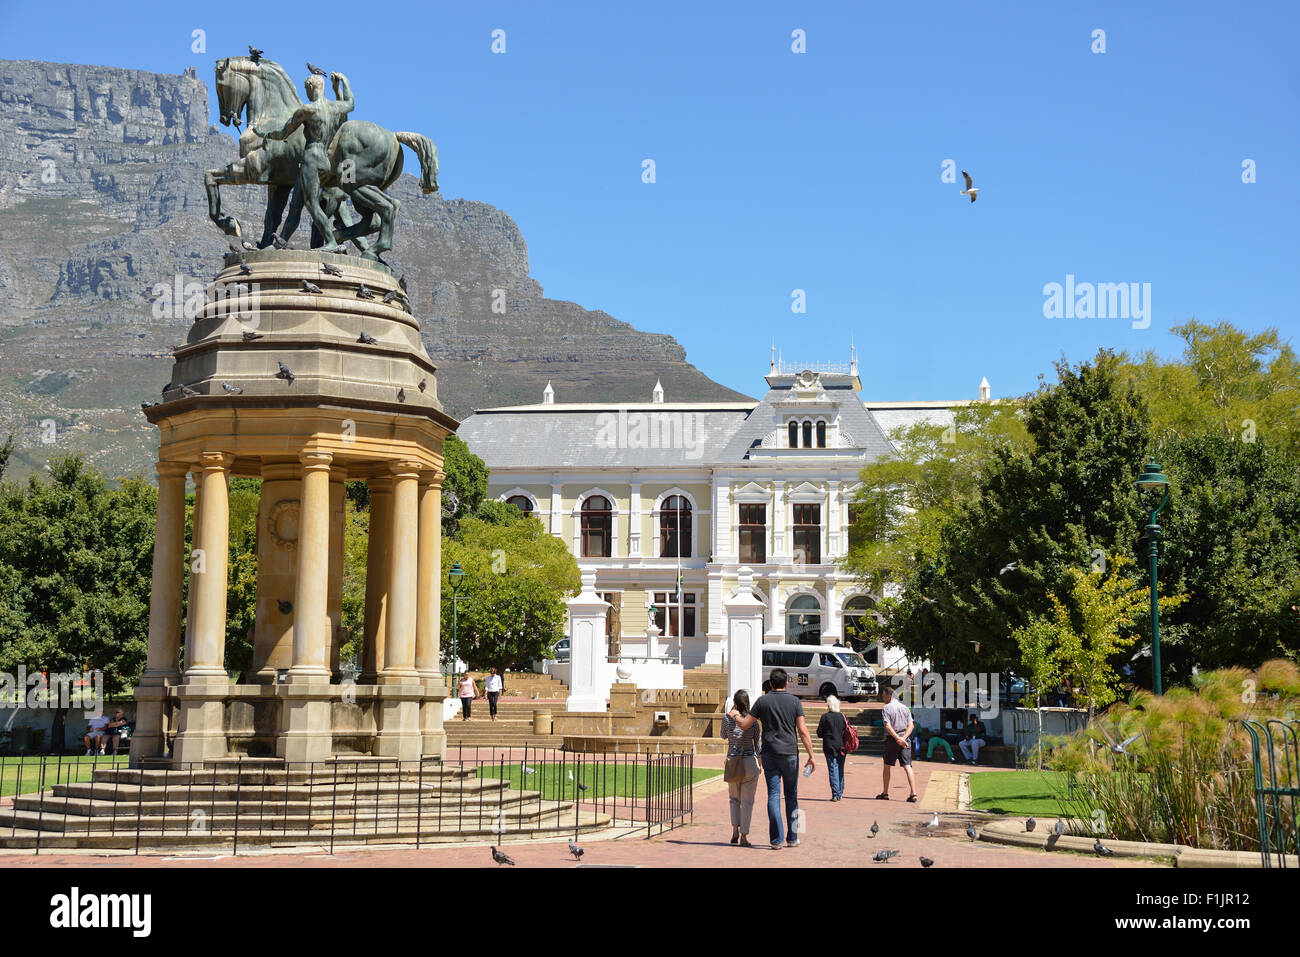 Delville Wood Memorial and Iziko SA Museum, The Company's Garden, Cape Town, Western Cape Province, Republic - Stock Image